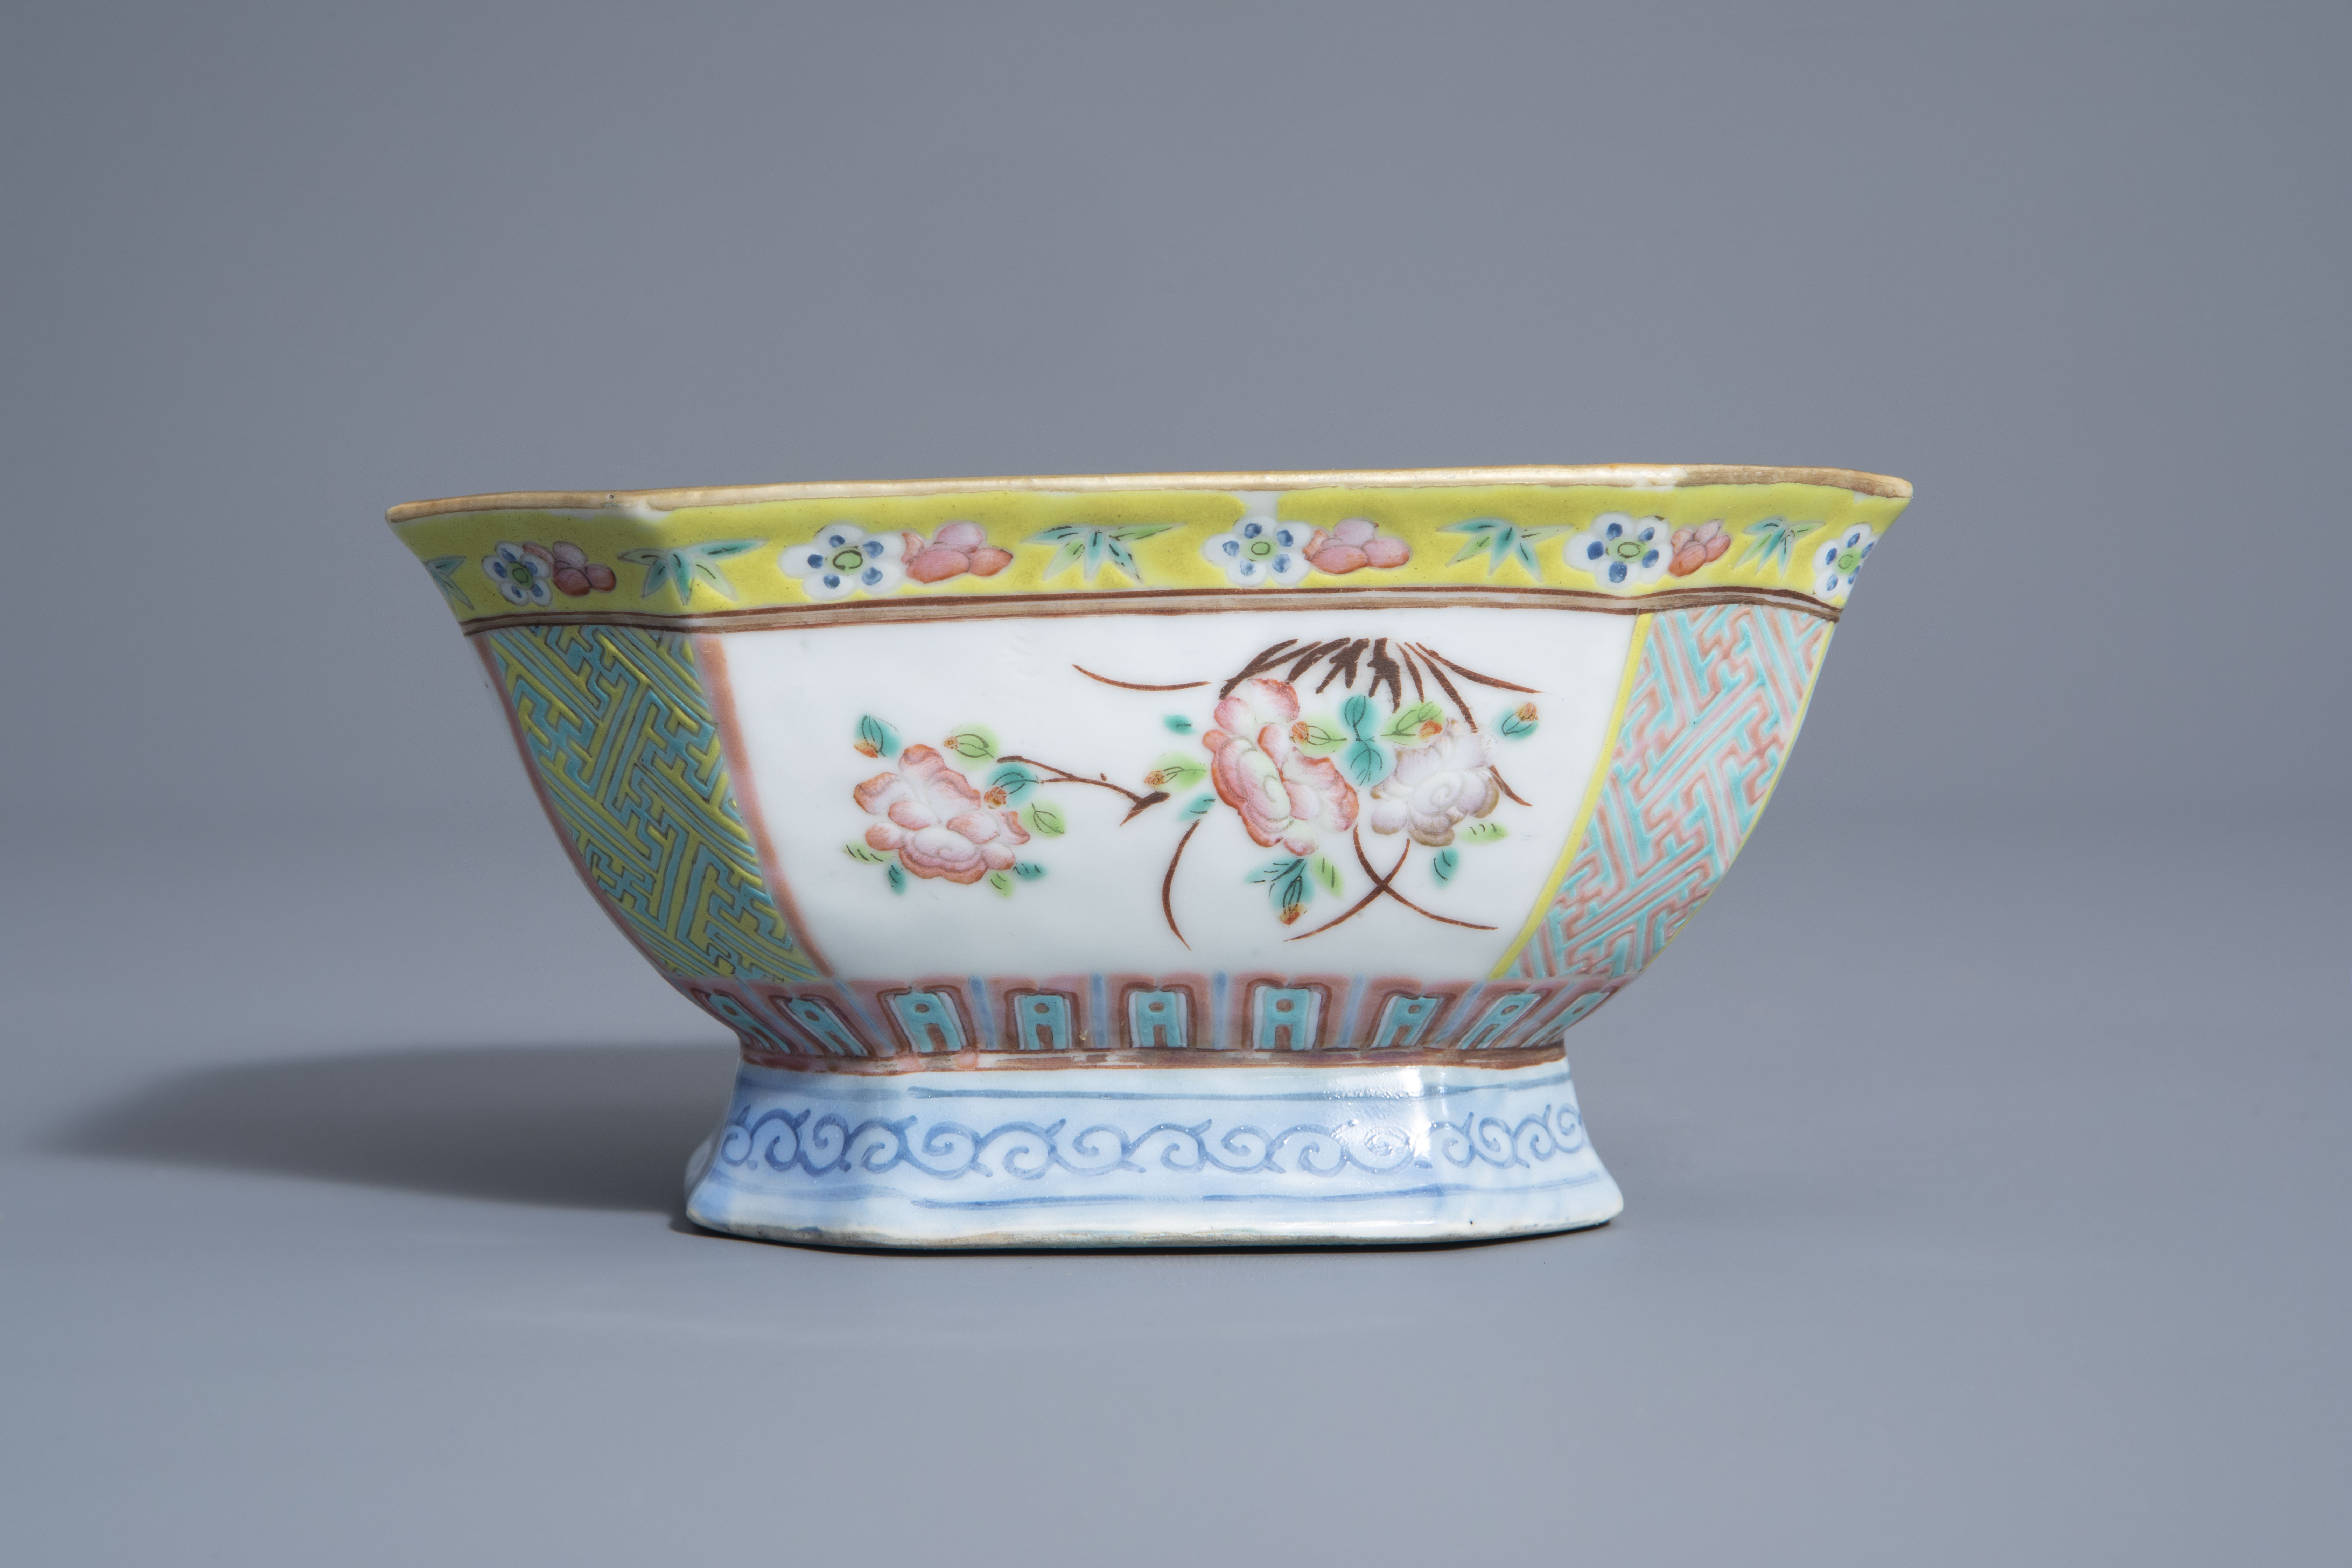 A Chinese famille rose octagonal bowl with floral design, Qianlong mark, 19th C. - Image 5 of 7